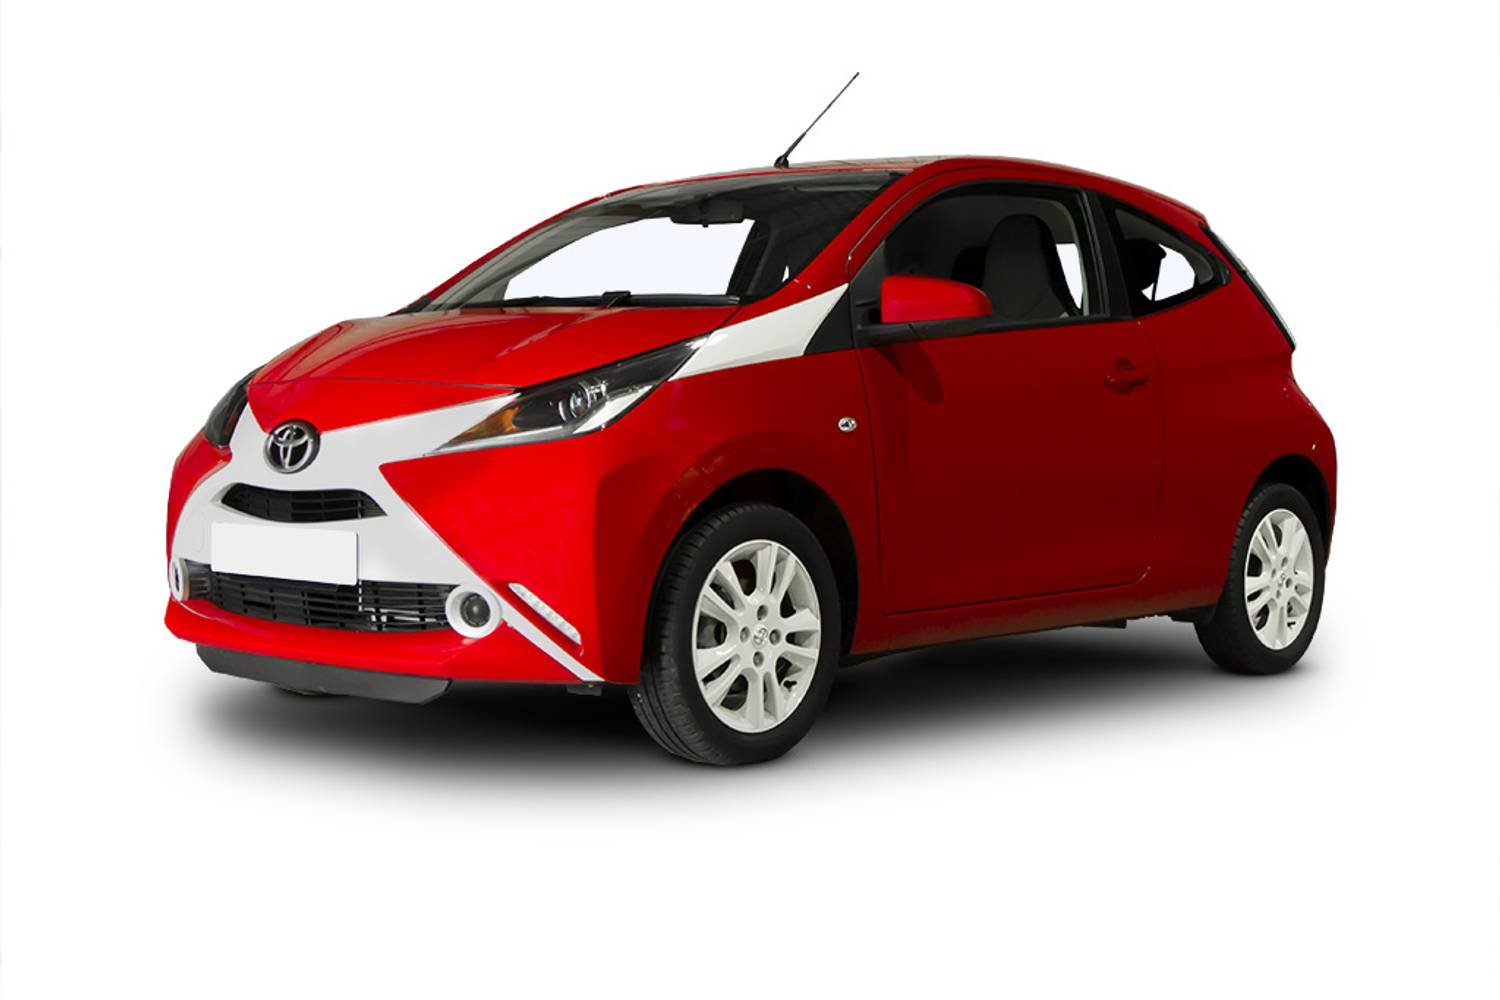 new toyota aygo hatchback 1 0 vvt i x play 3 door 2014 for sale. Black Bedroom Furniture Sets. Home Design Ideas